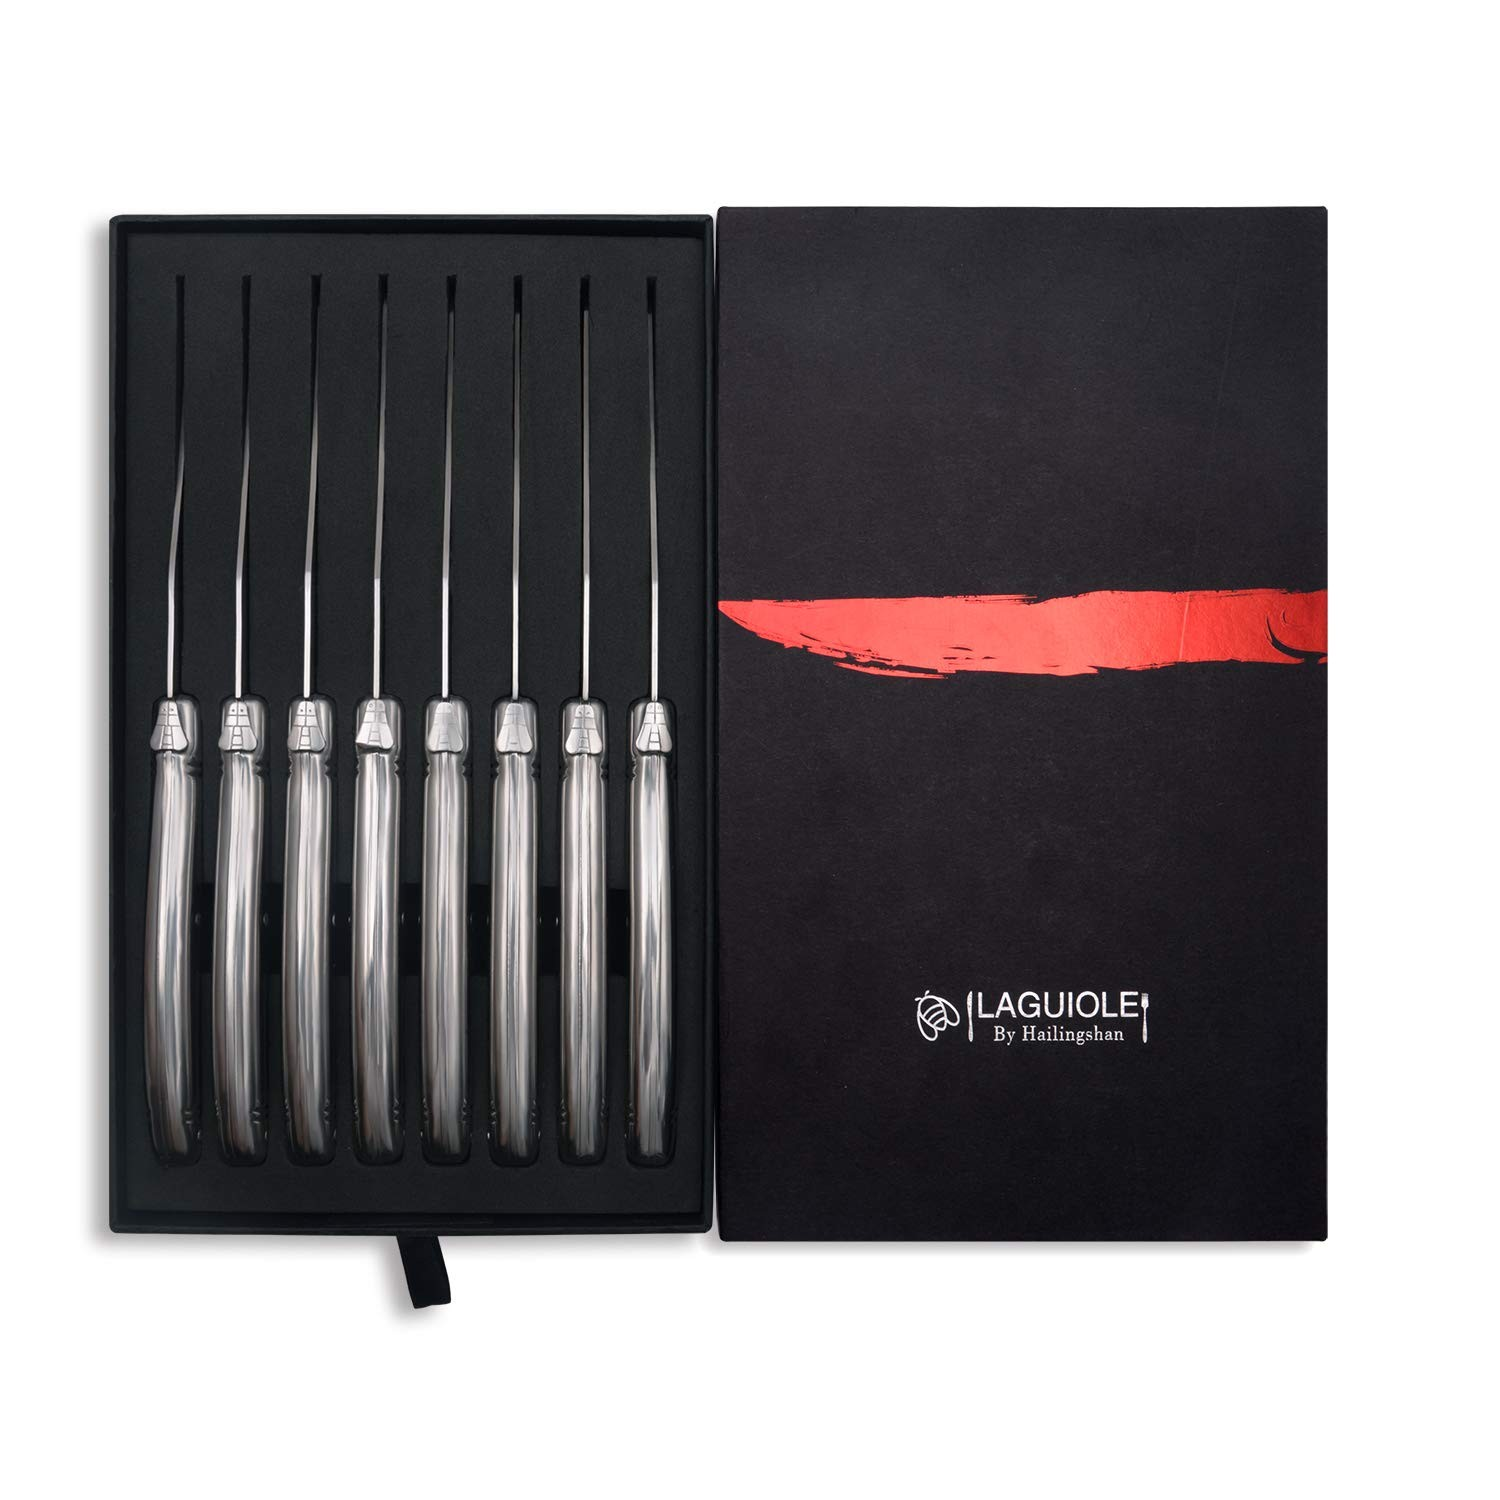 Lot 58 - Boxed Brand New Laguiloe Style By Hallingshan Set of 8 Steak Knifes RRP £49.99